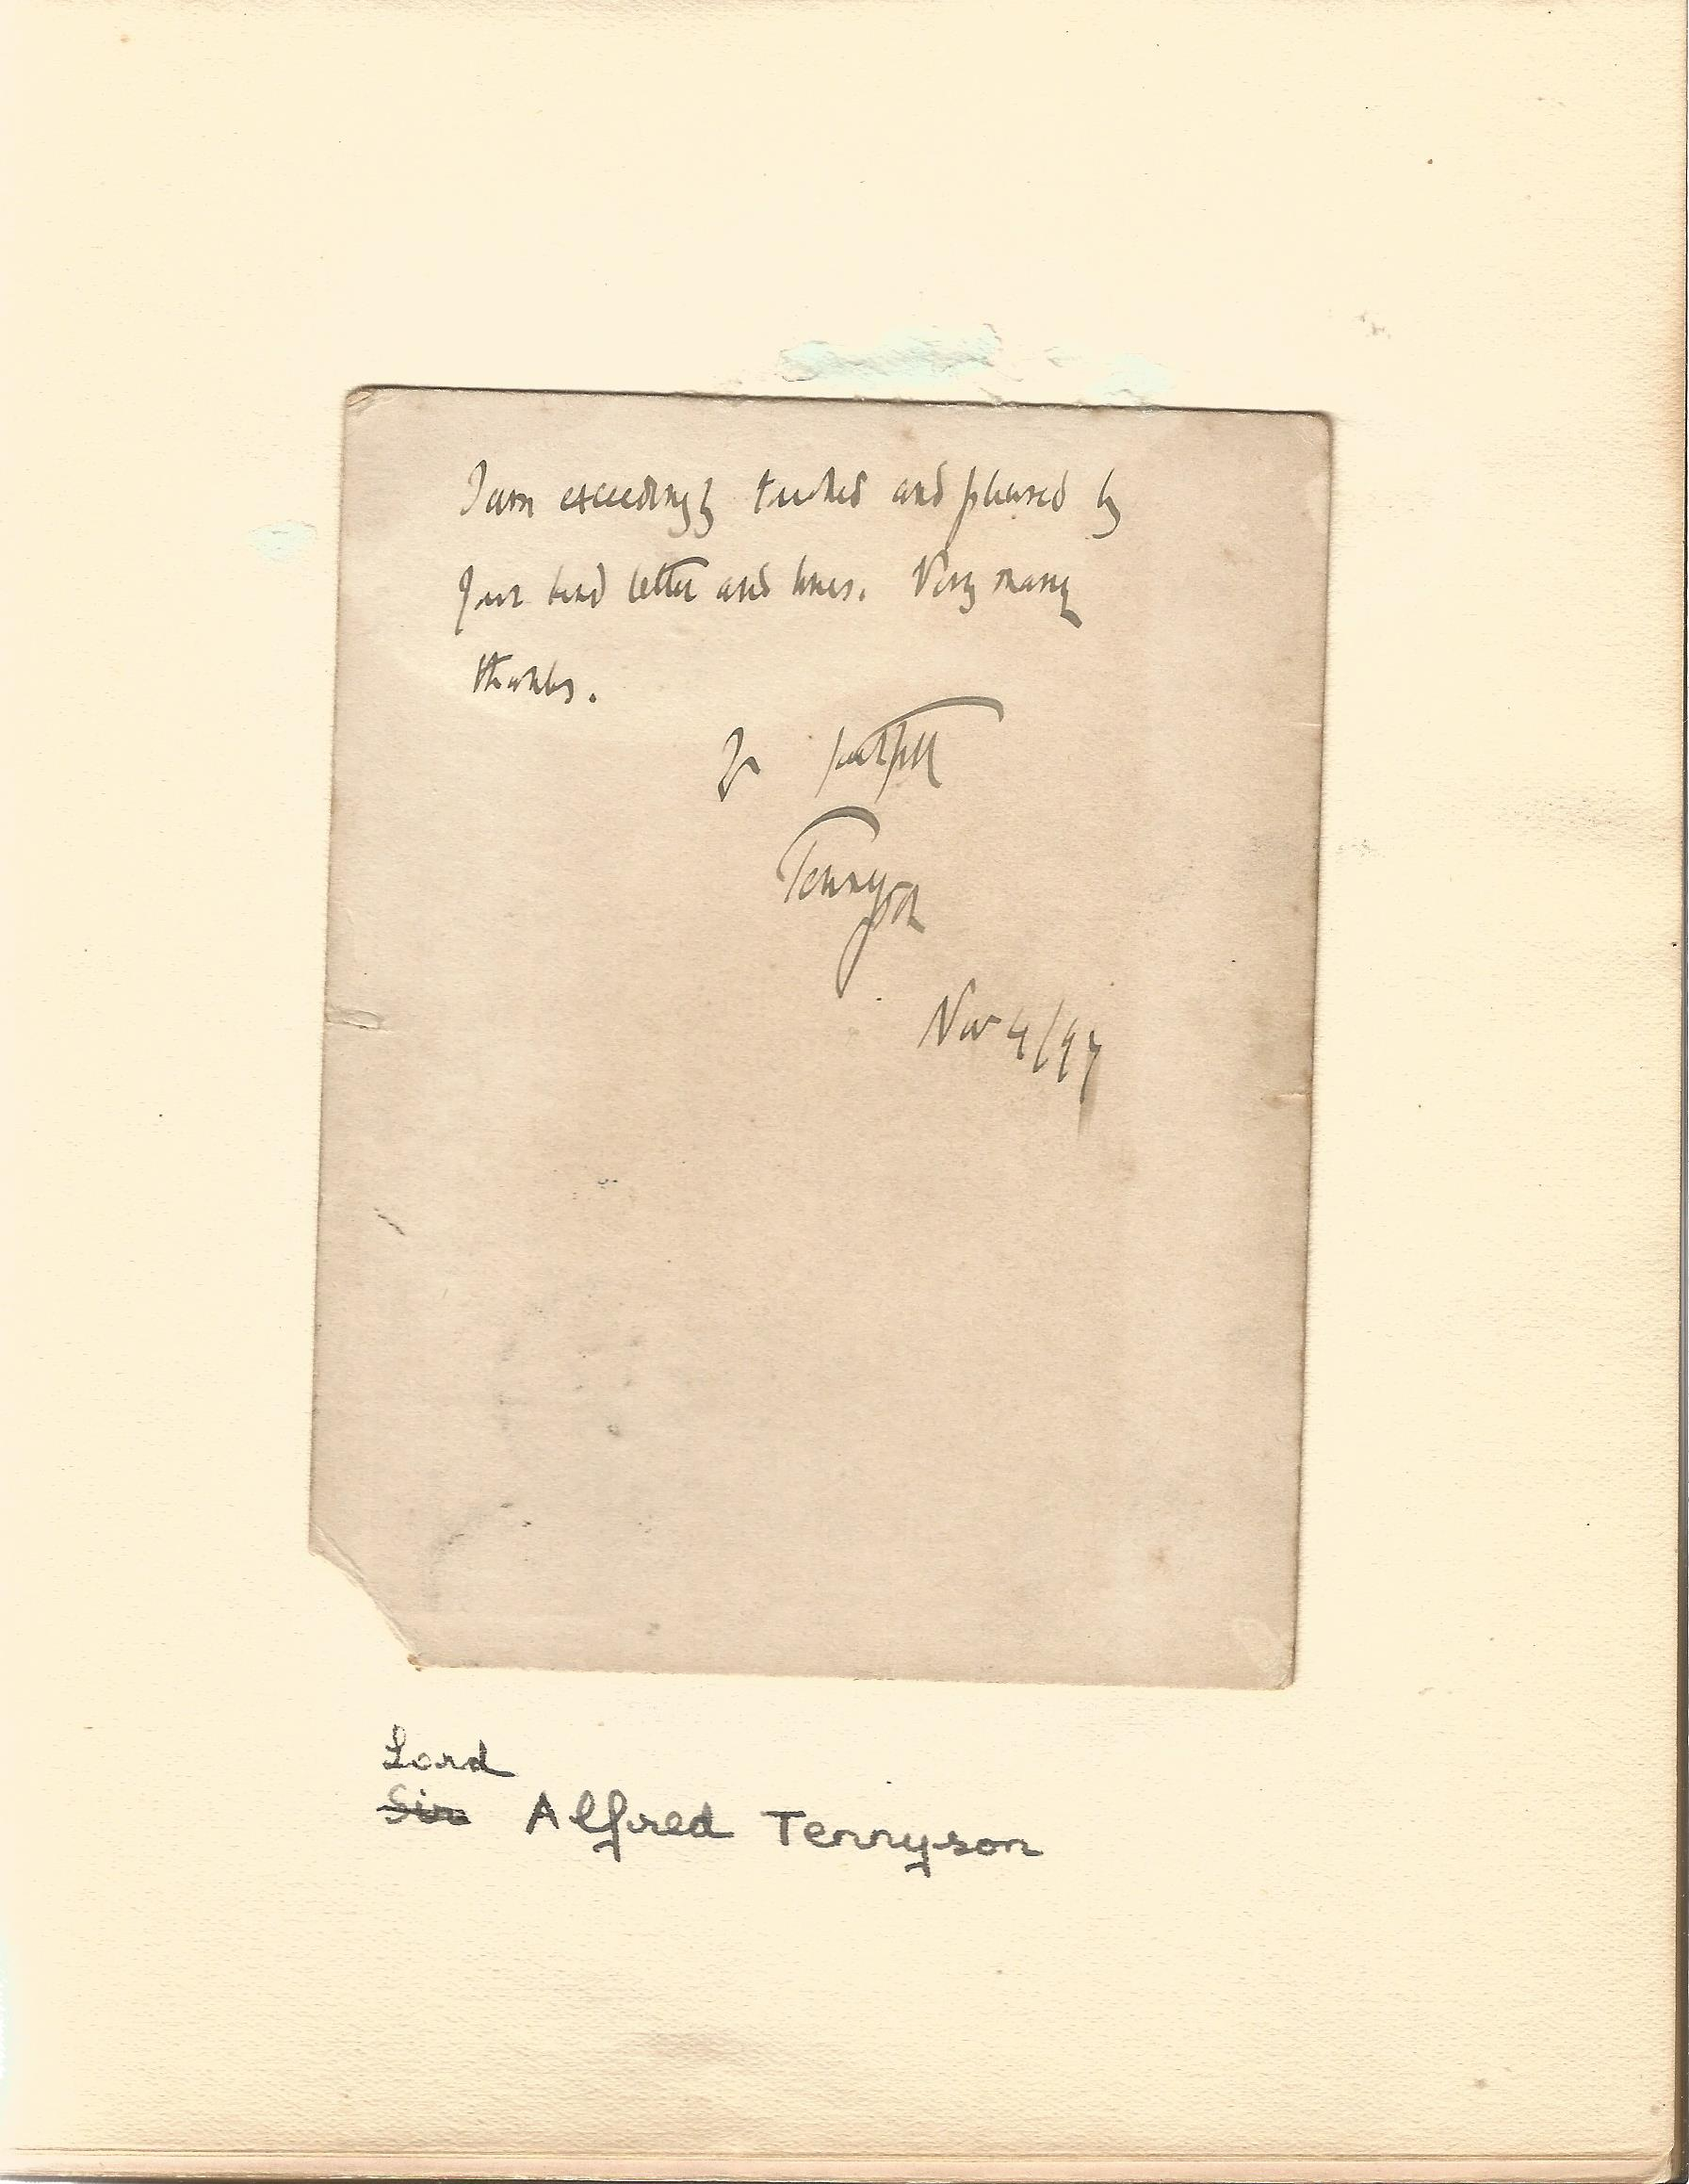 Literary autograph book collection includes some well-known names such as Sir Richard Terry, JB - Image 6 of 9